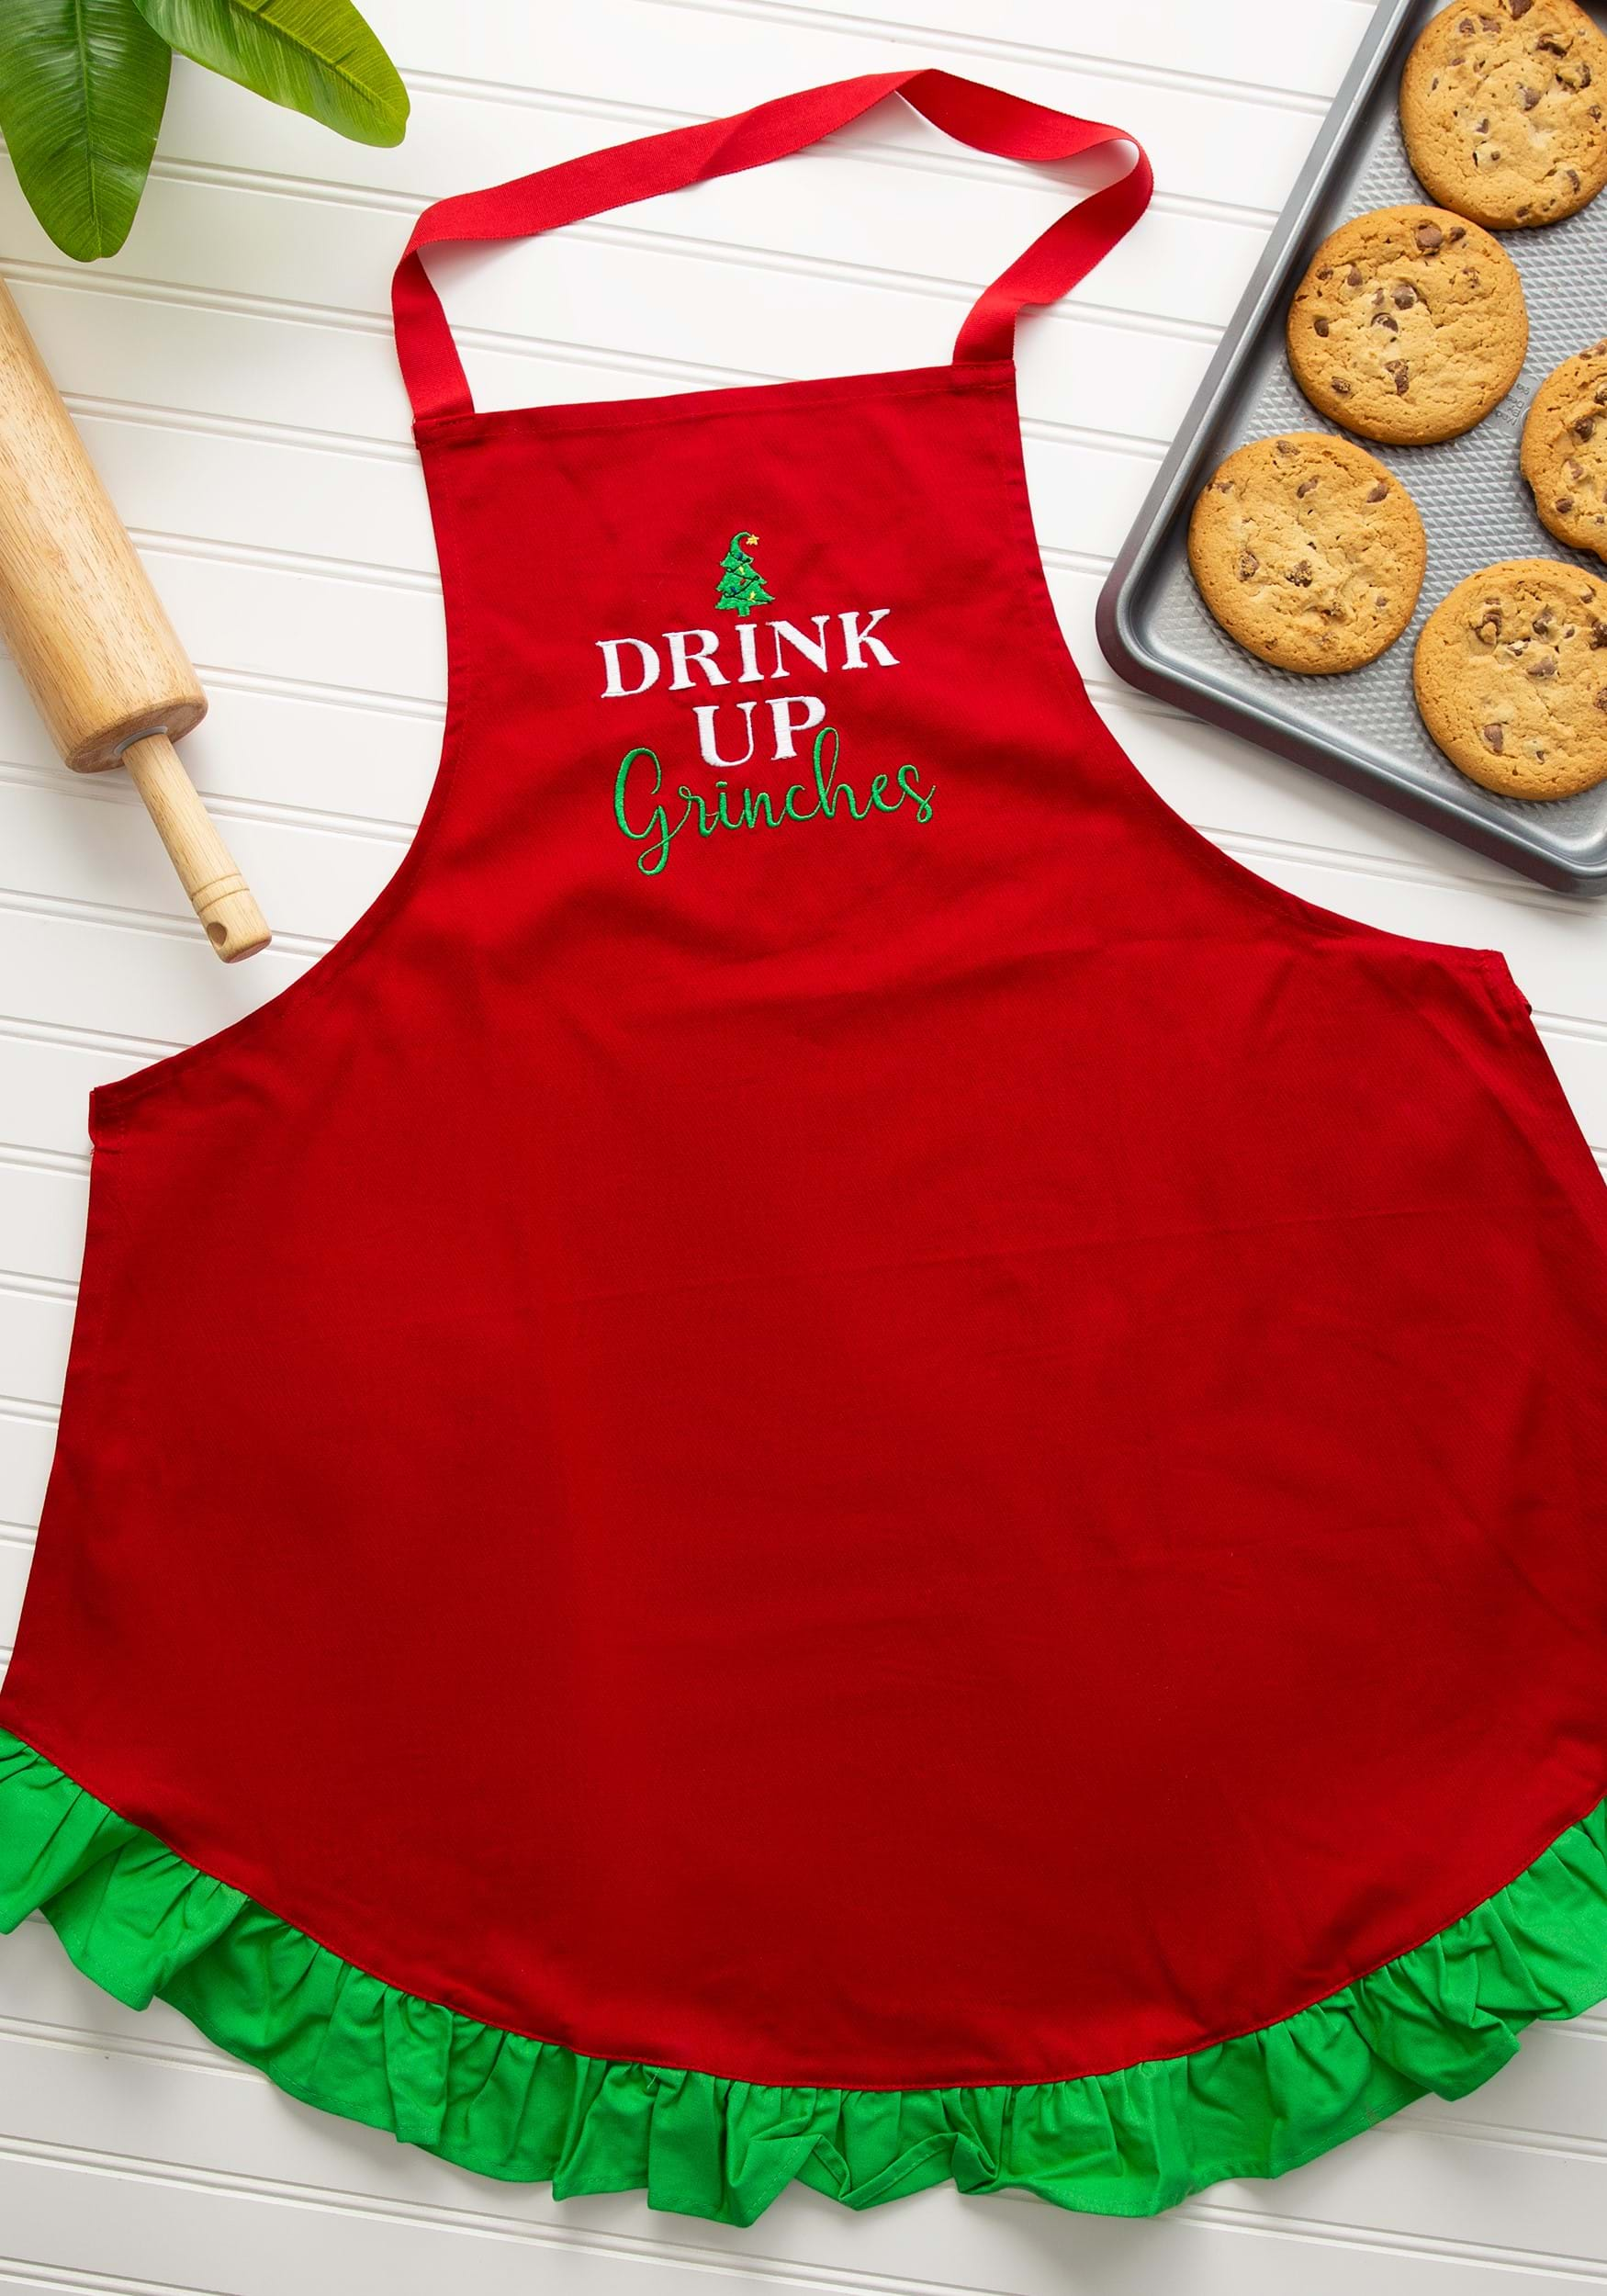 drink up grinches christmas apron - Christmas Apron